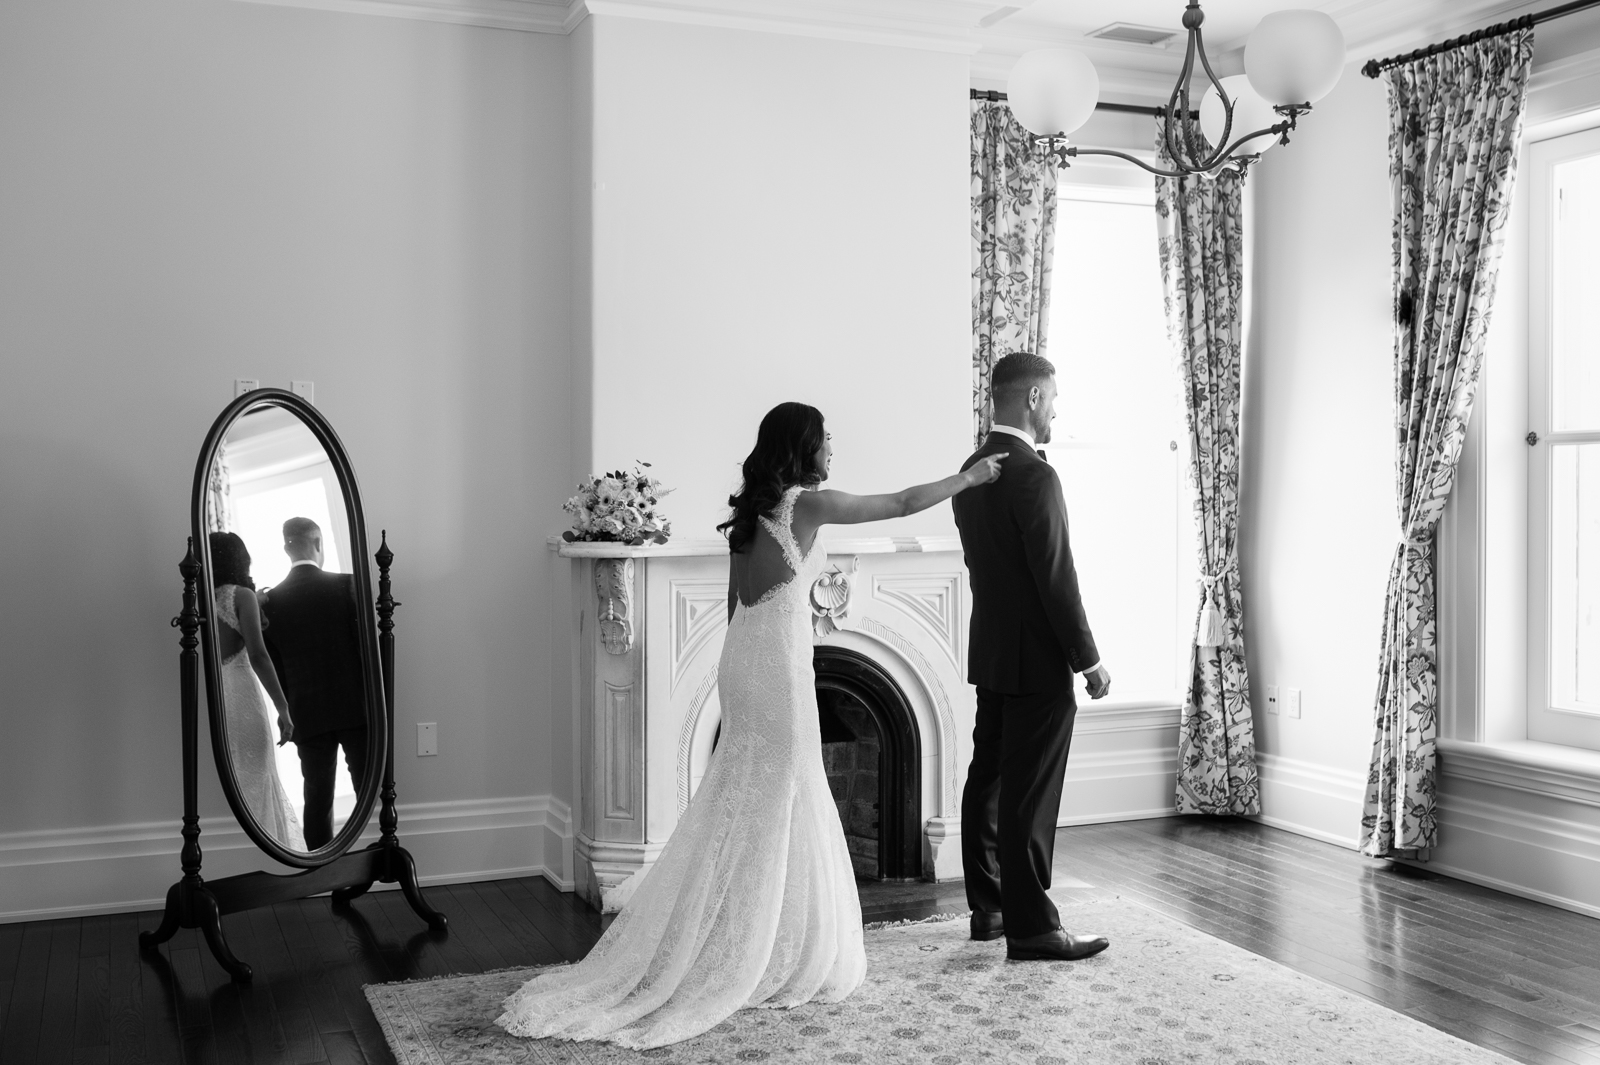 tara-mcmullen-photography-toronto-wedding-photography-alderlea-mansion-wedding-alderlea-wedding-brampton-scotsdale-farm-wedding-reem-acra-wedding-006